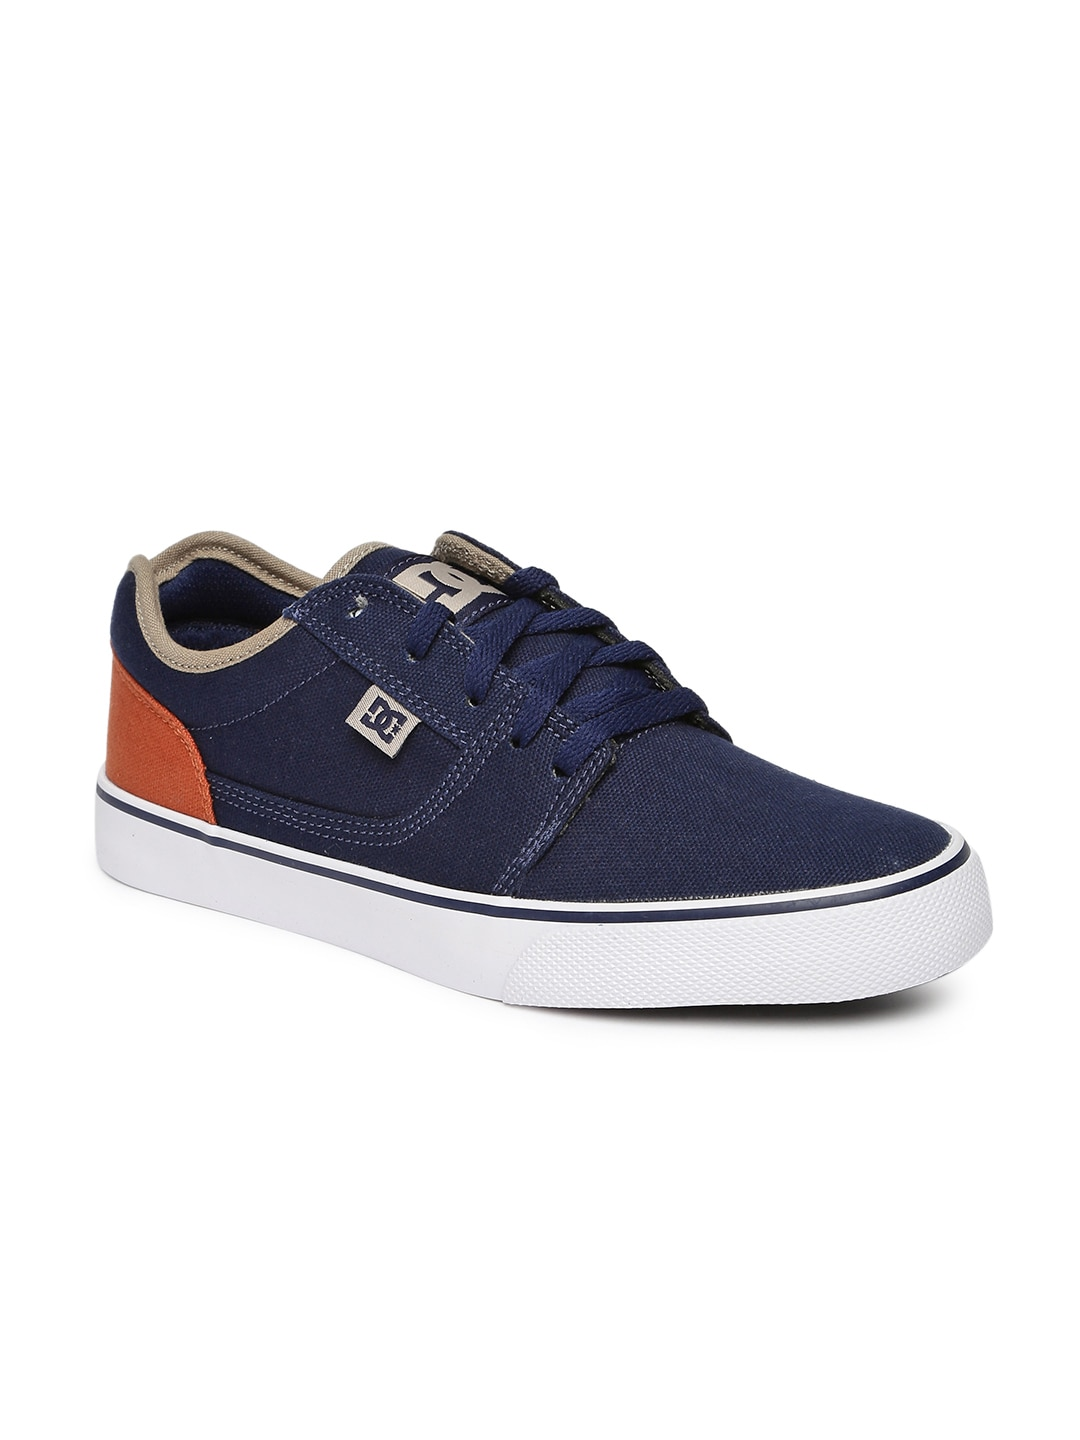 3467f2efe0 DC Shoes - Buy DC Shoes for Men   Women Online in India